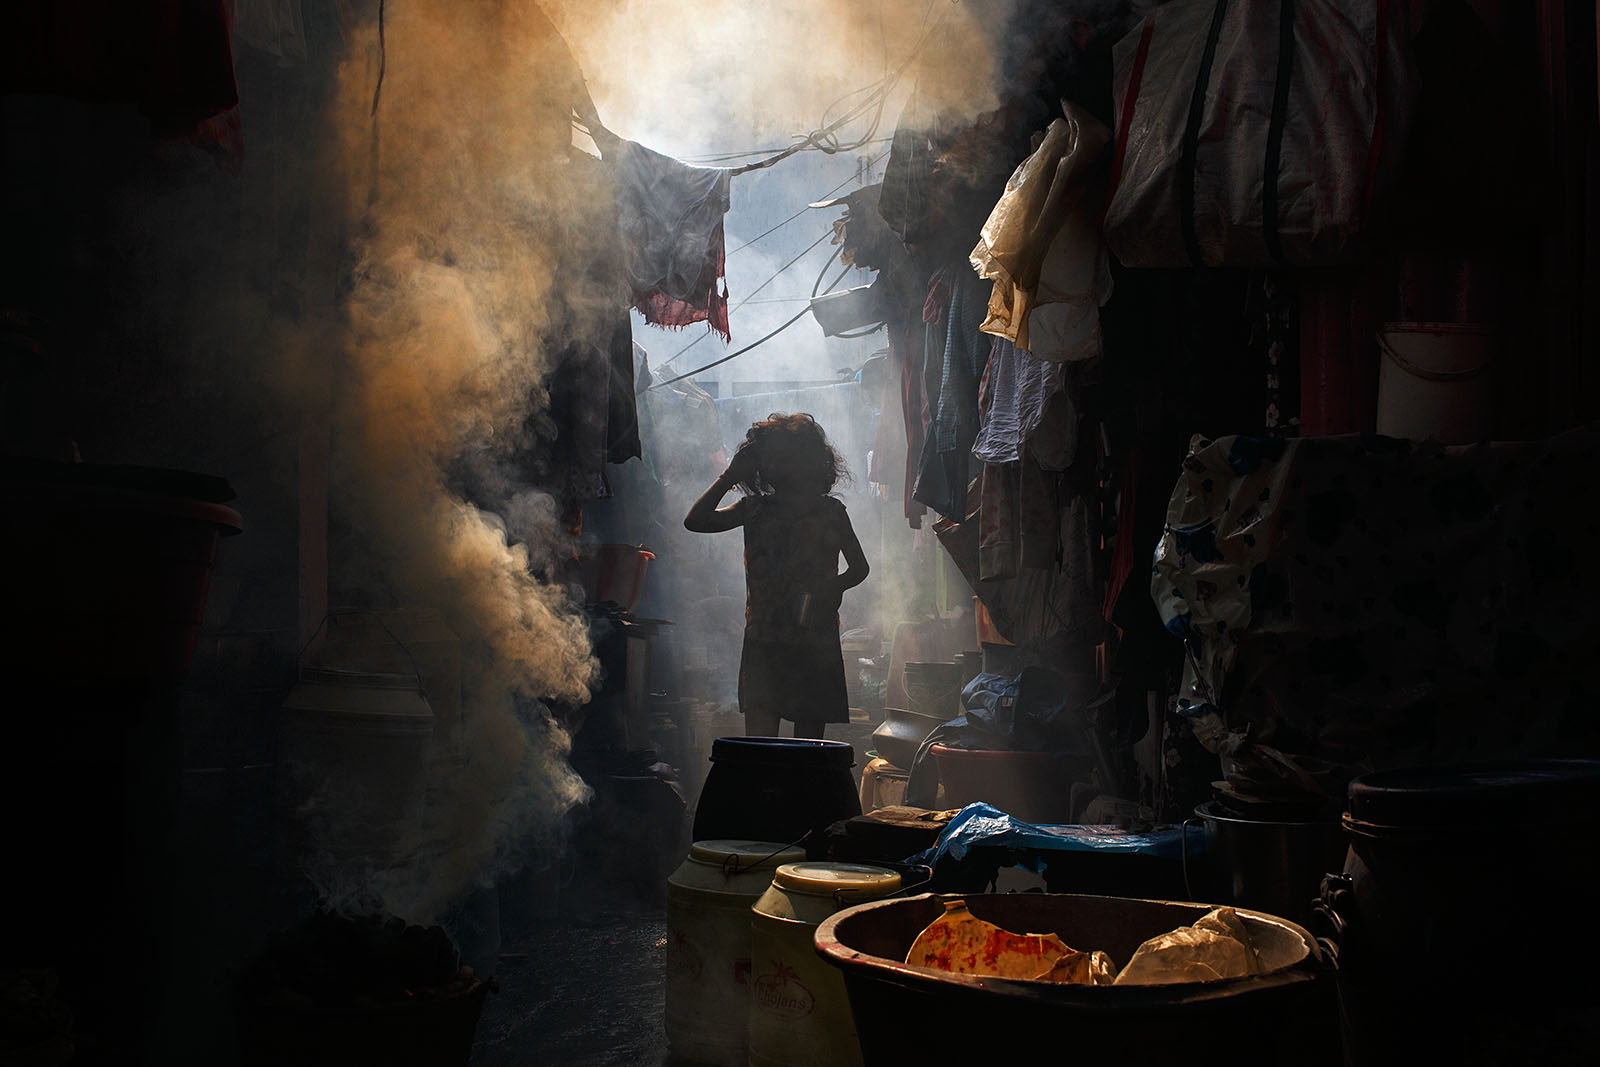 Smoke - Kolkata, India | by Maciej Dakowicz